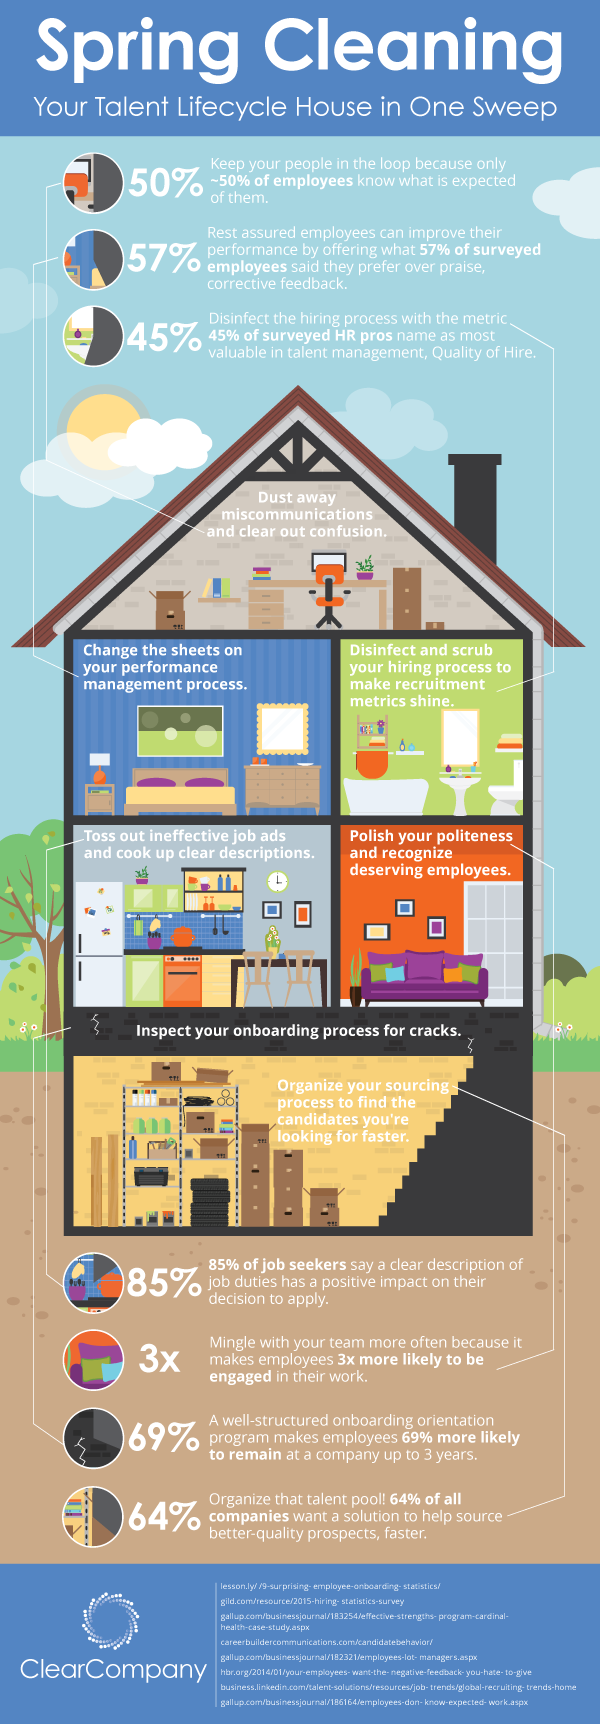 CC_SpringCleaning_Infographic.png